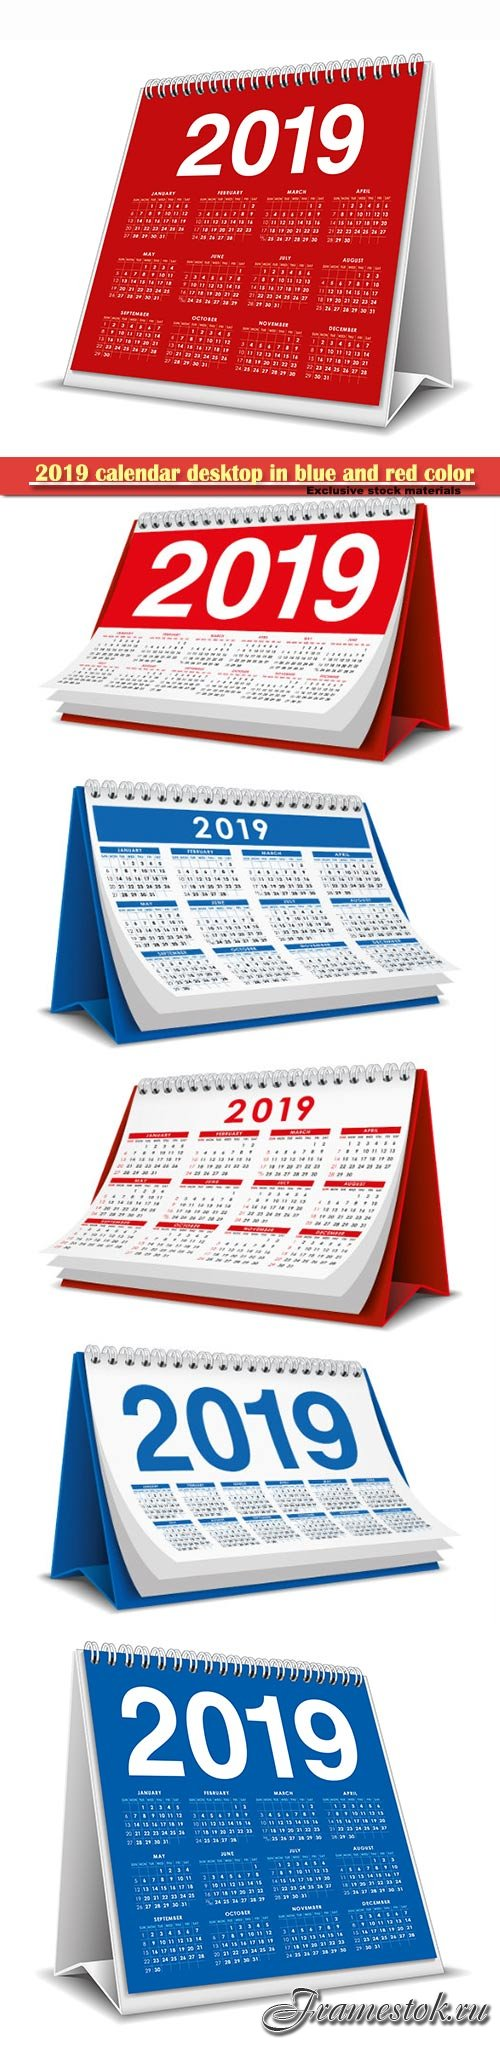 2019 calendar desktop in blue and red color